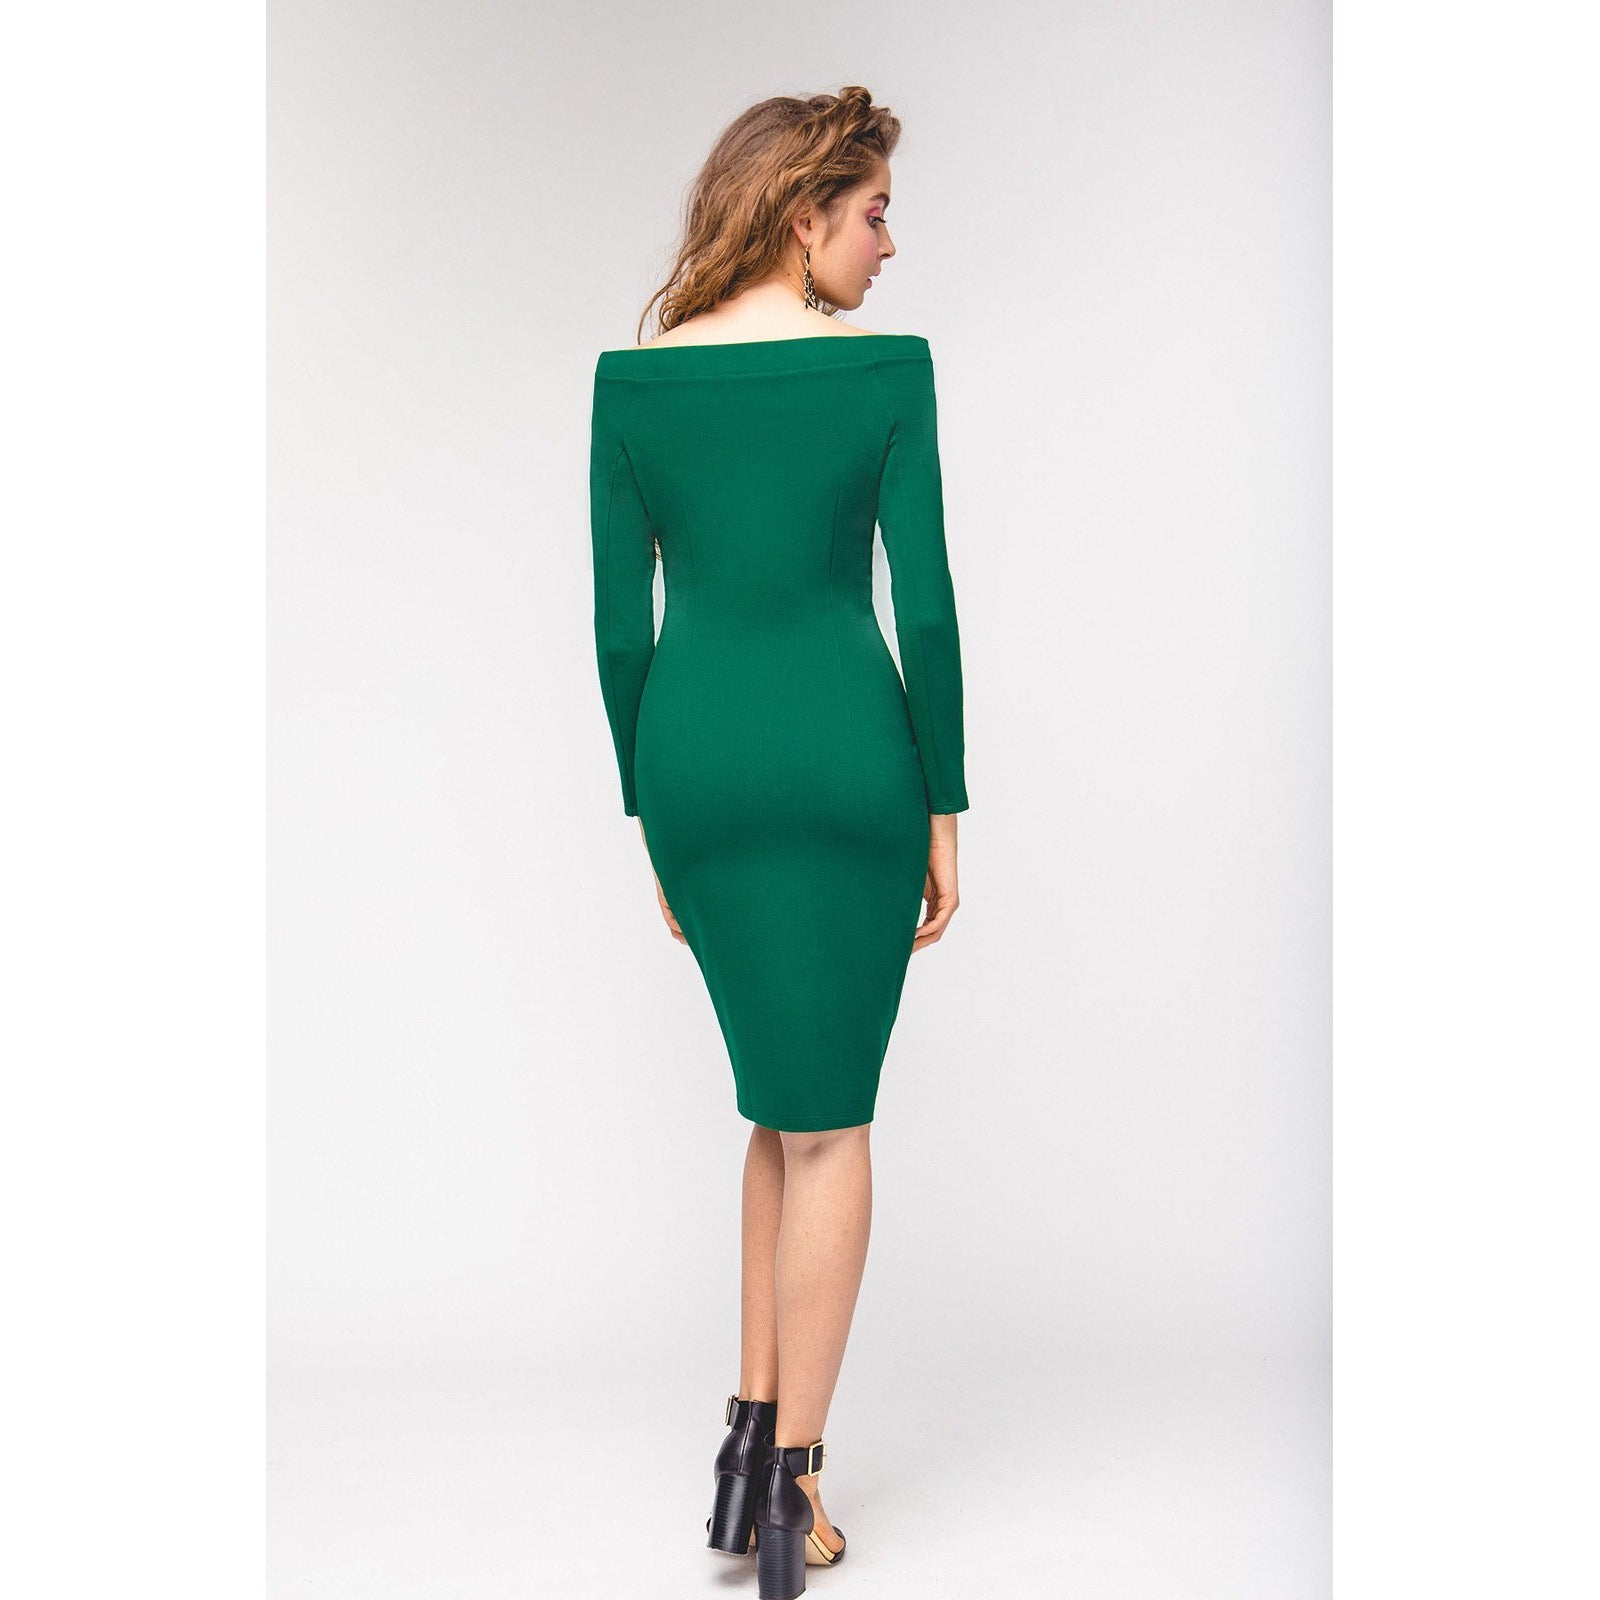 Green Bodycon Dress The Way I Feel-OVER THE SEA-HOUSE of BOTTA